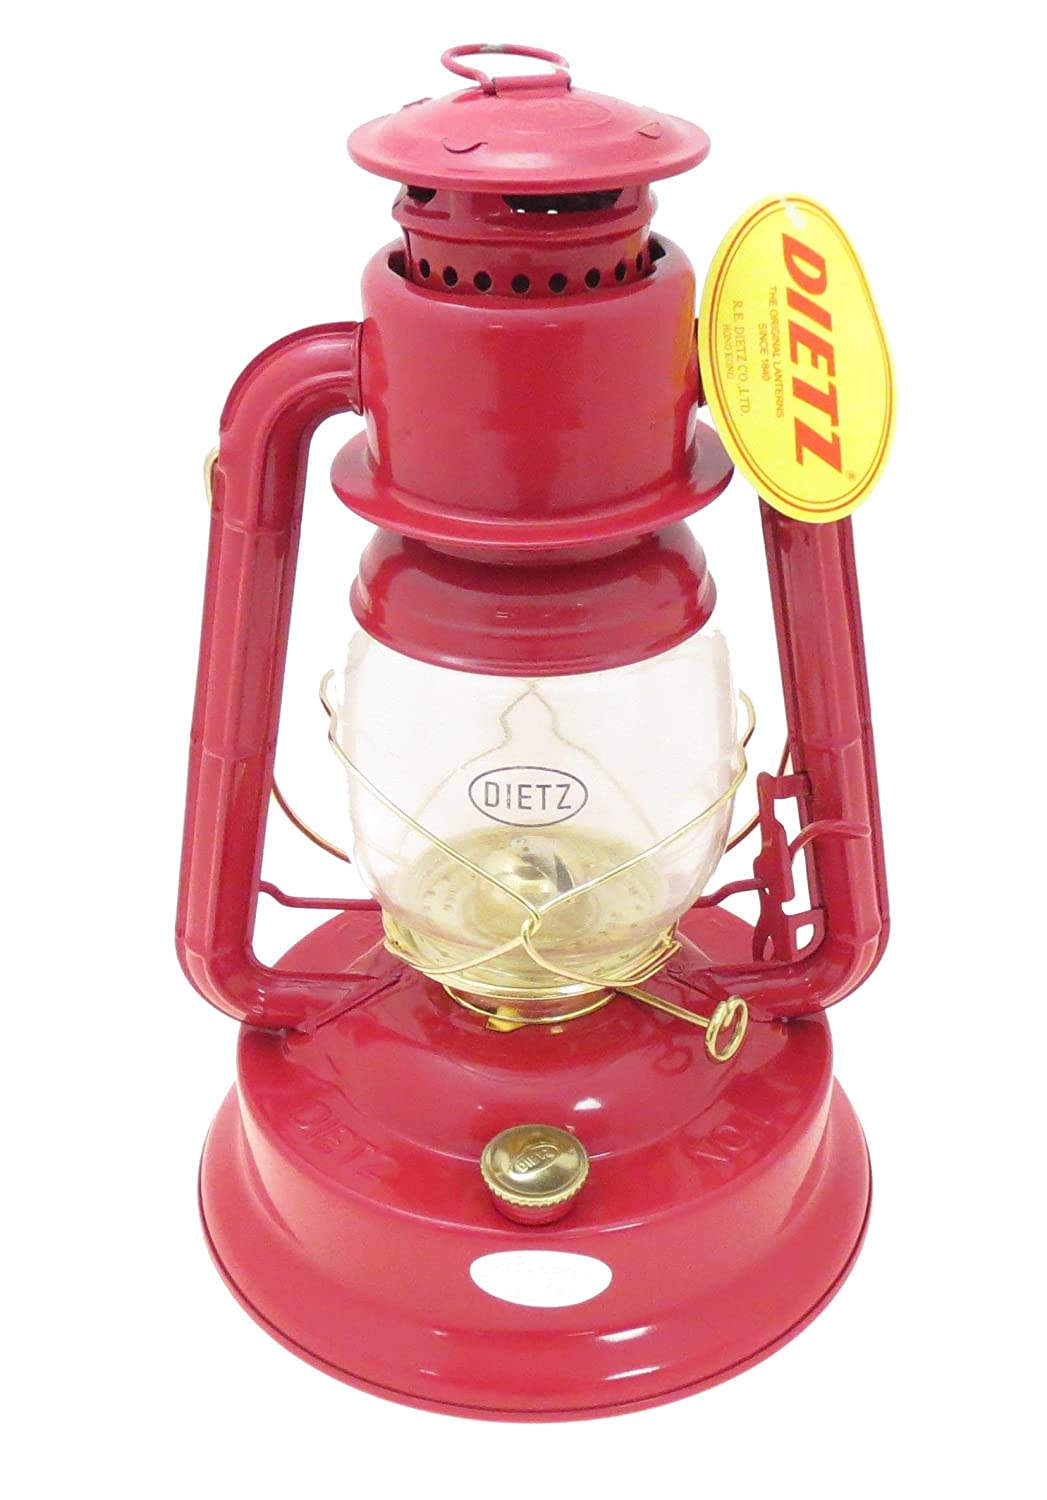 Dietz 1 Little Wizard Oil Lamp Burning Lantern Blue